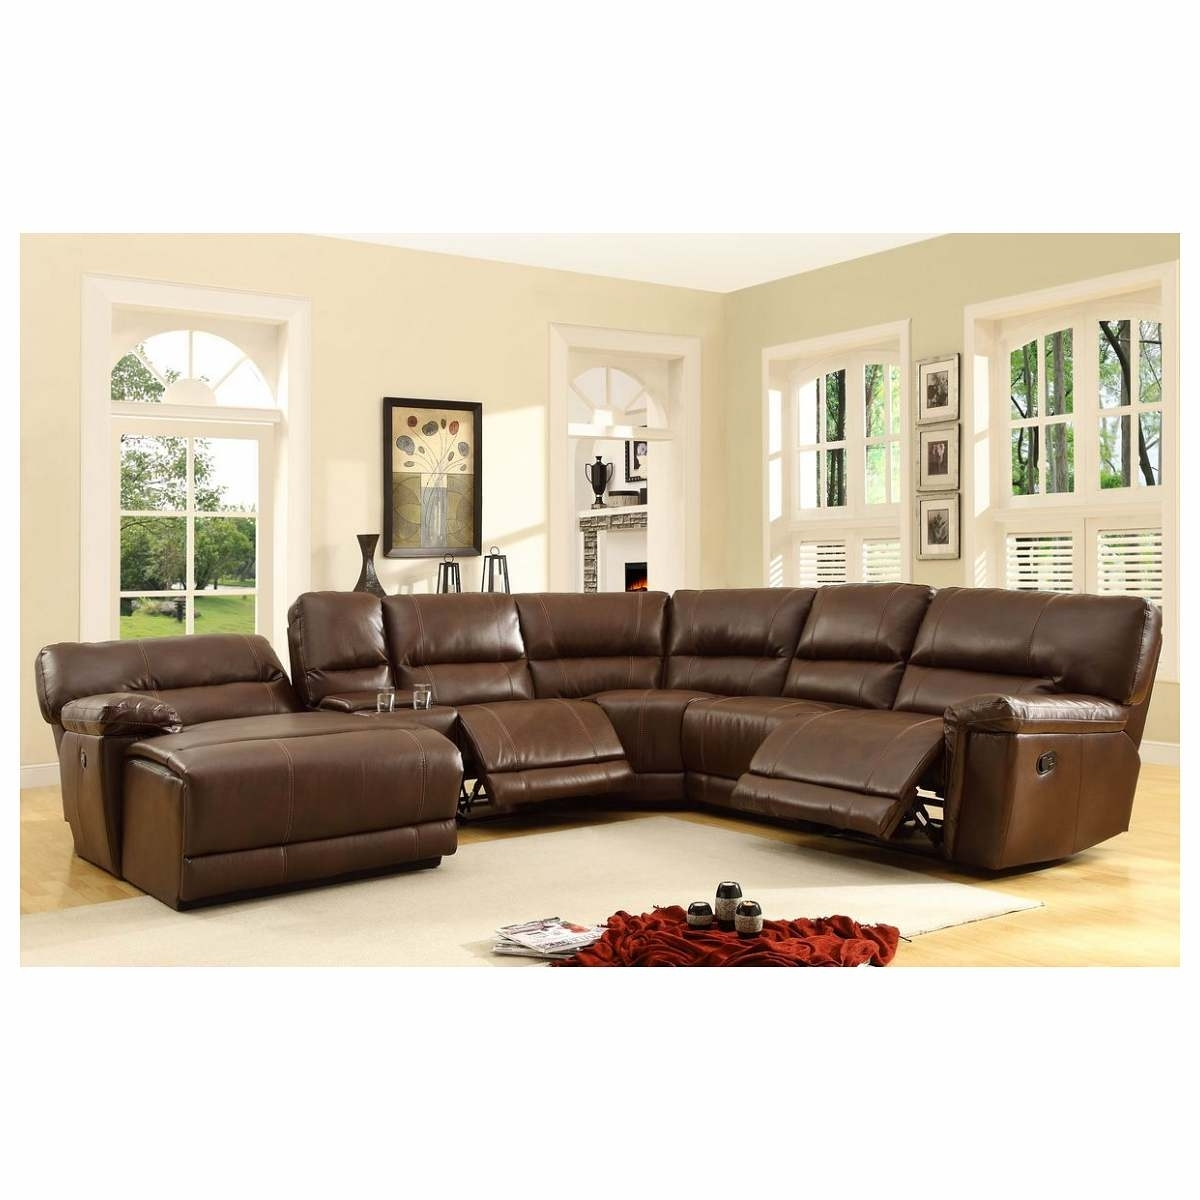 Newest 6 Pc Blythe Collection Brown Bonded Leather Match Upholstered Regarding Eau Claire Wi Sectional Sofas (View 11 of 15)